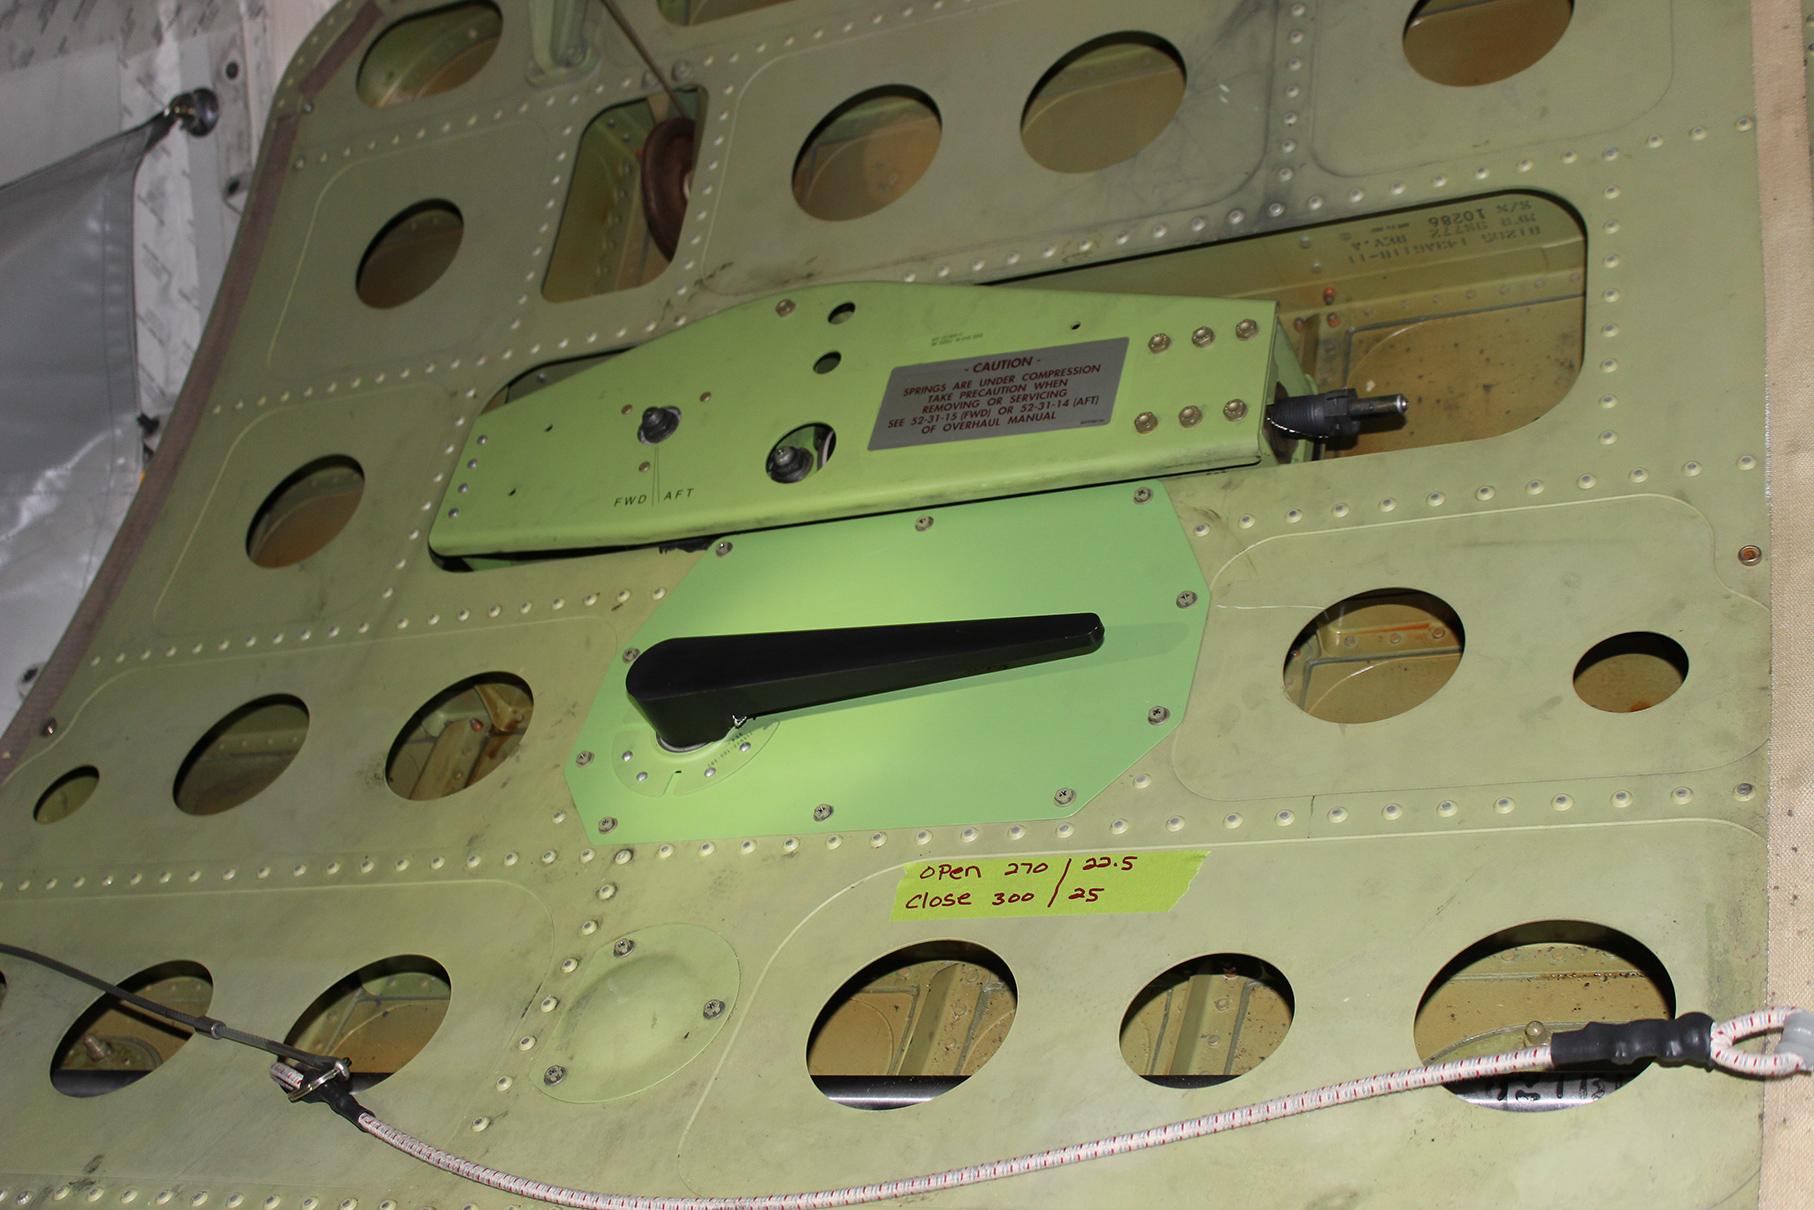 B737/NG cargo door latch STC installed (inside view)